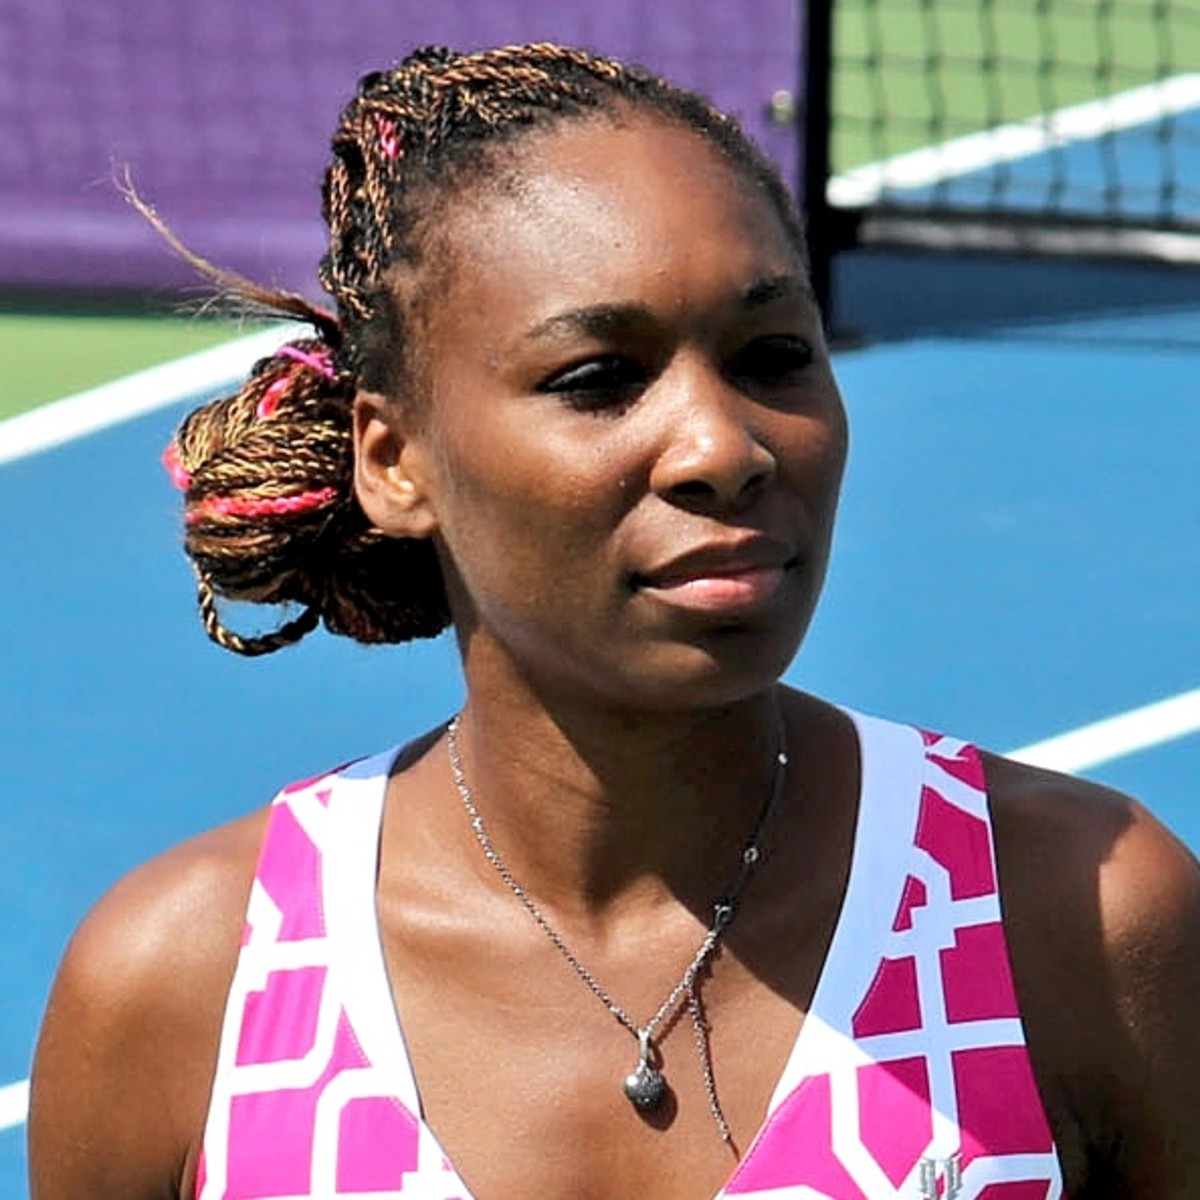 venus williams   tennis player athlete   biography